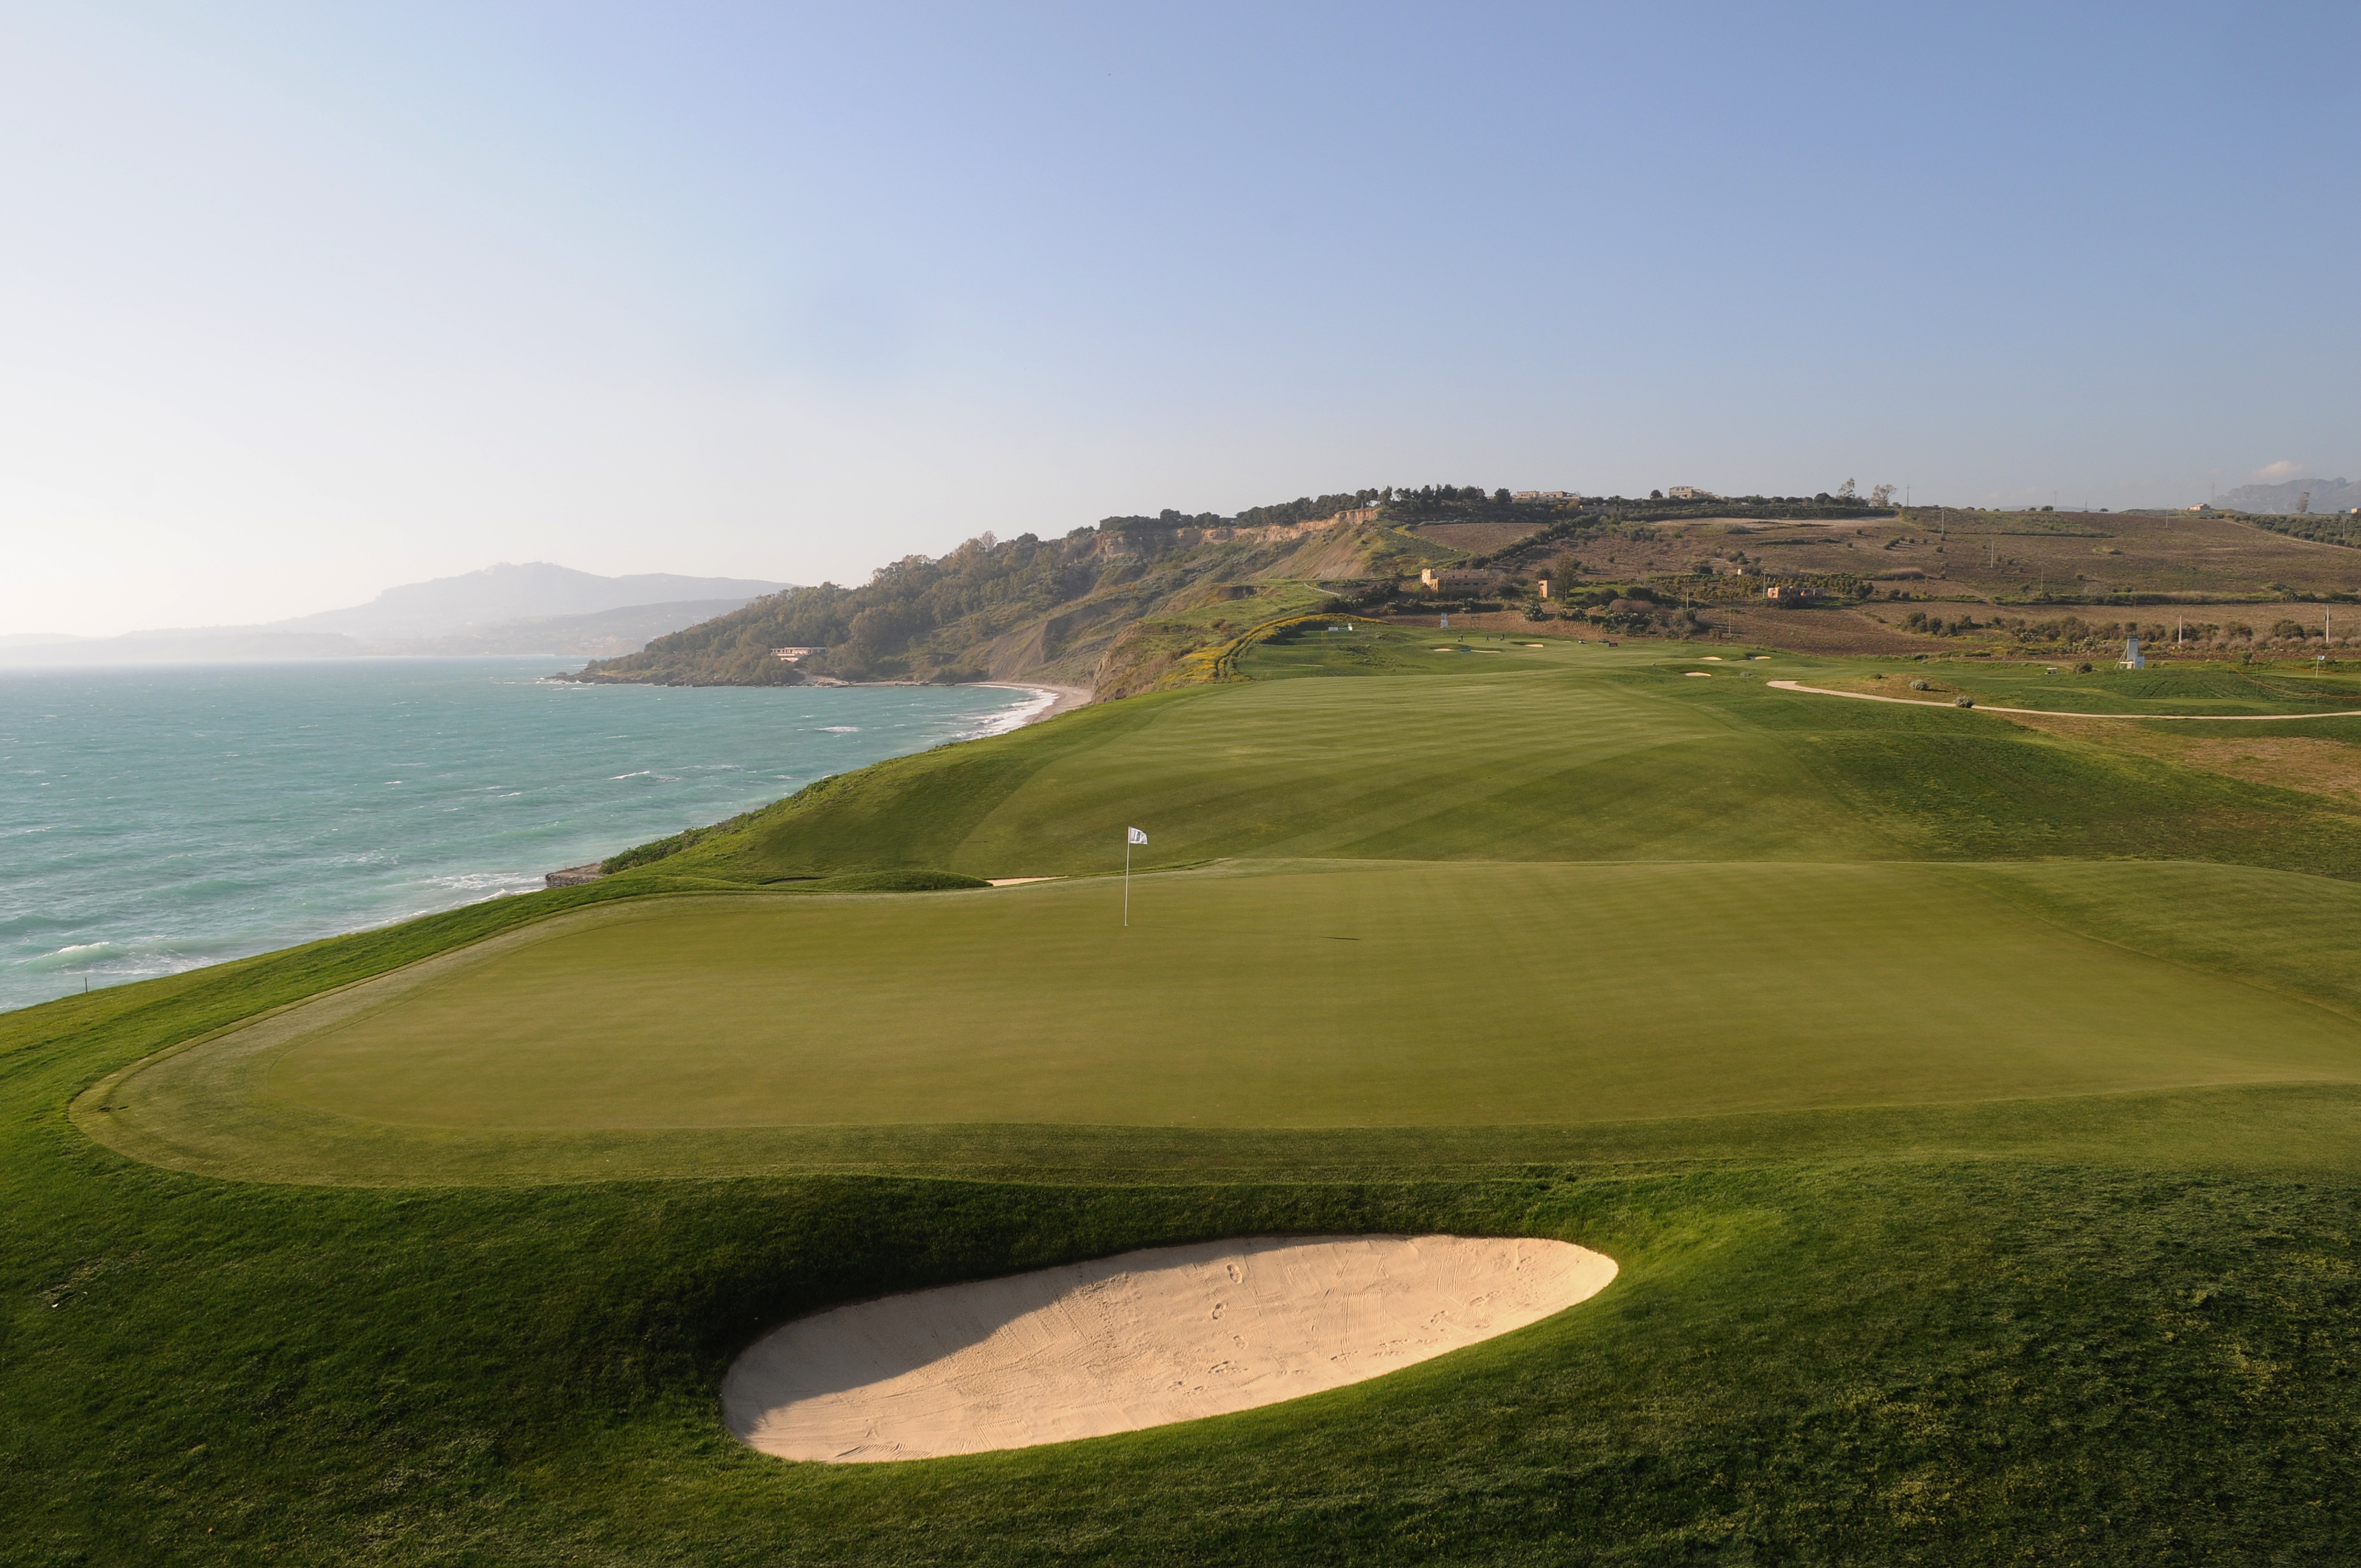 Verdura-Golf-Spa-Resort-18th-Hole-East-Course-3860